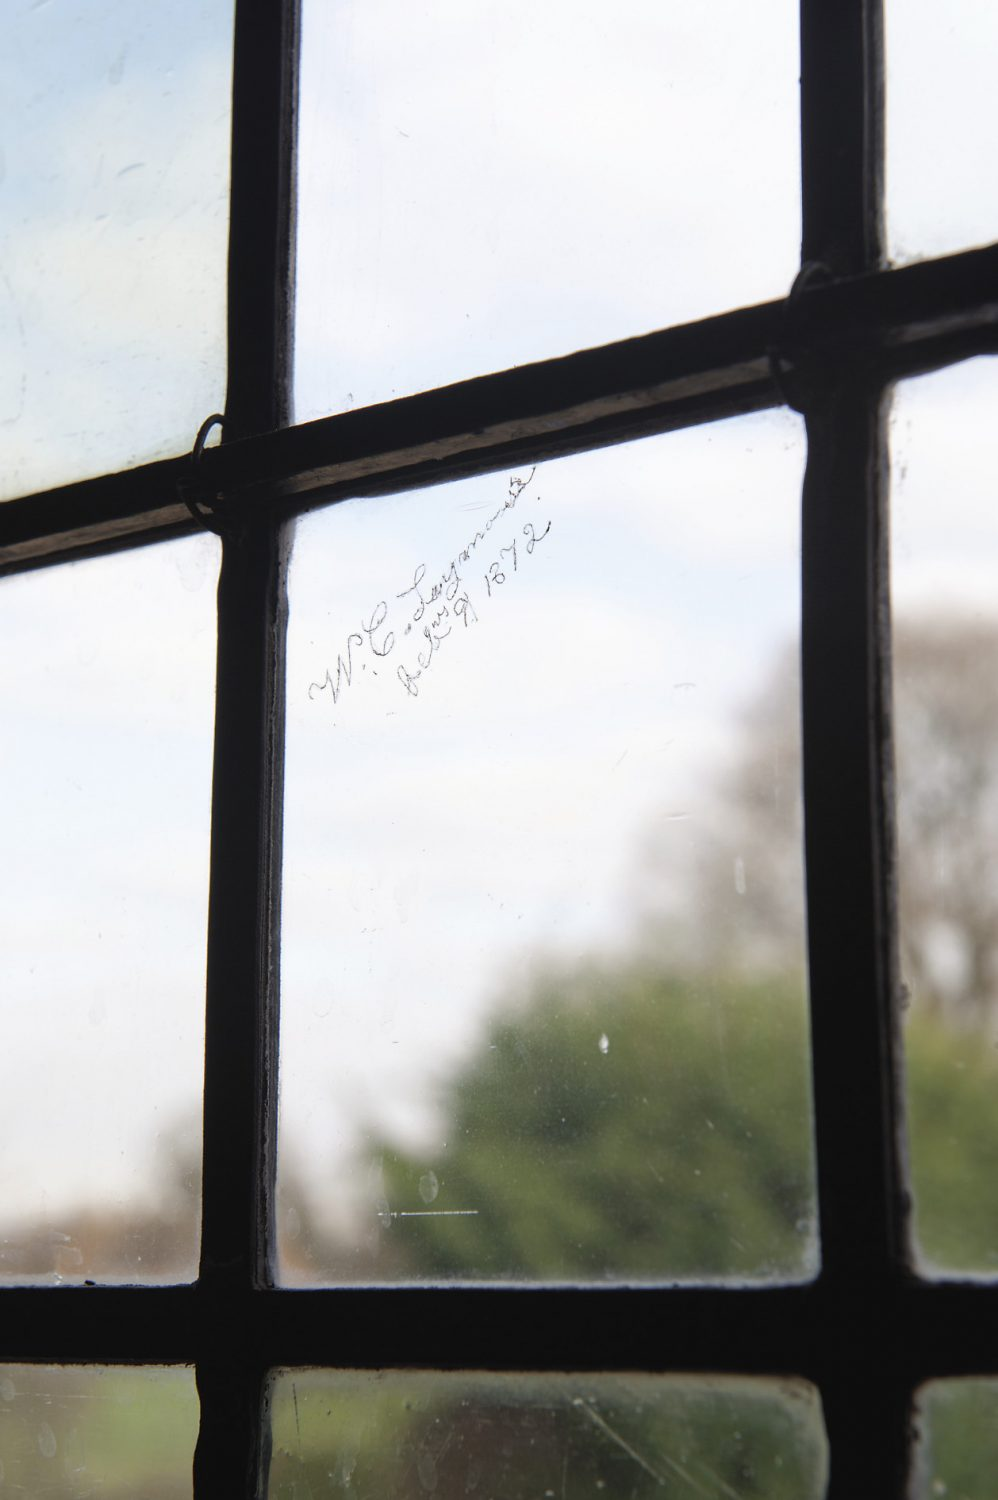 A leaded-light window that has developed such a slope over the centuries that it looks as if it is somehow melting away at one end. In one tiny pane of glass there is a signature in neat copperplate script: W.C. Laymouth, February 9th 1872. And high up at the top, David and Daphne have recently spotted another signature, but this time it has been etched on the glass from the outside...